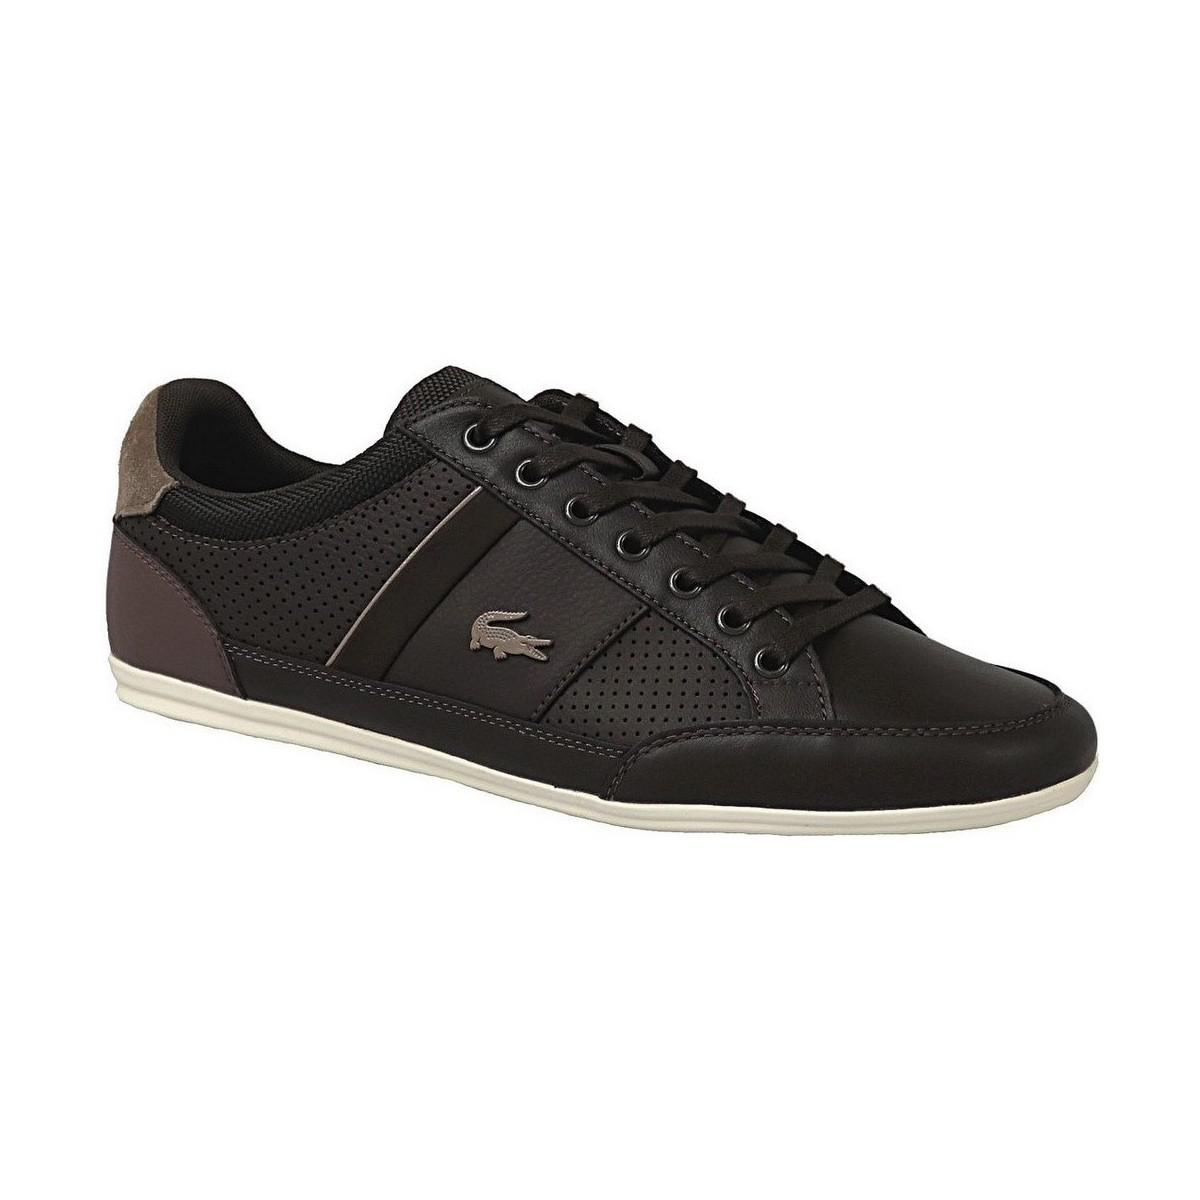 c7850f5a Lacoste Chaymon 117 1 Men's Shoes (trainers) In Brown for Men - Lyst